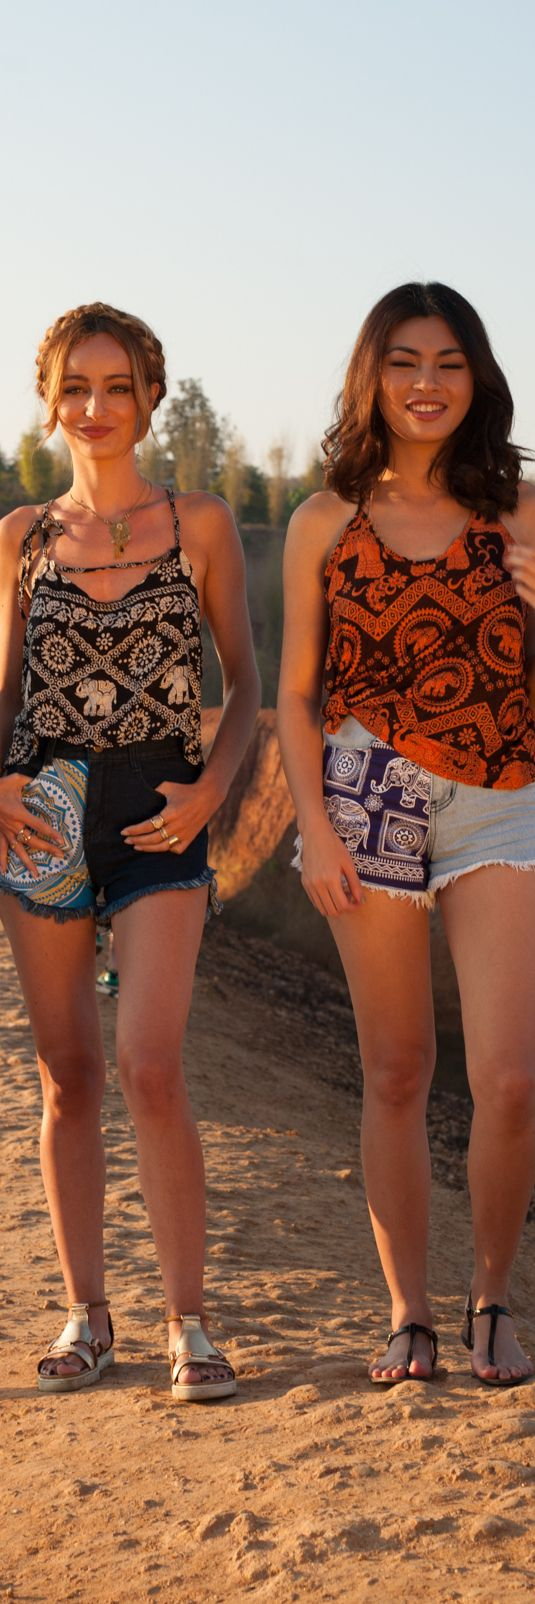 338 Best Beach Fashion Images On Pinterest Beach Fashion Beachwear Fashion And Crossbody Bags